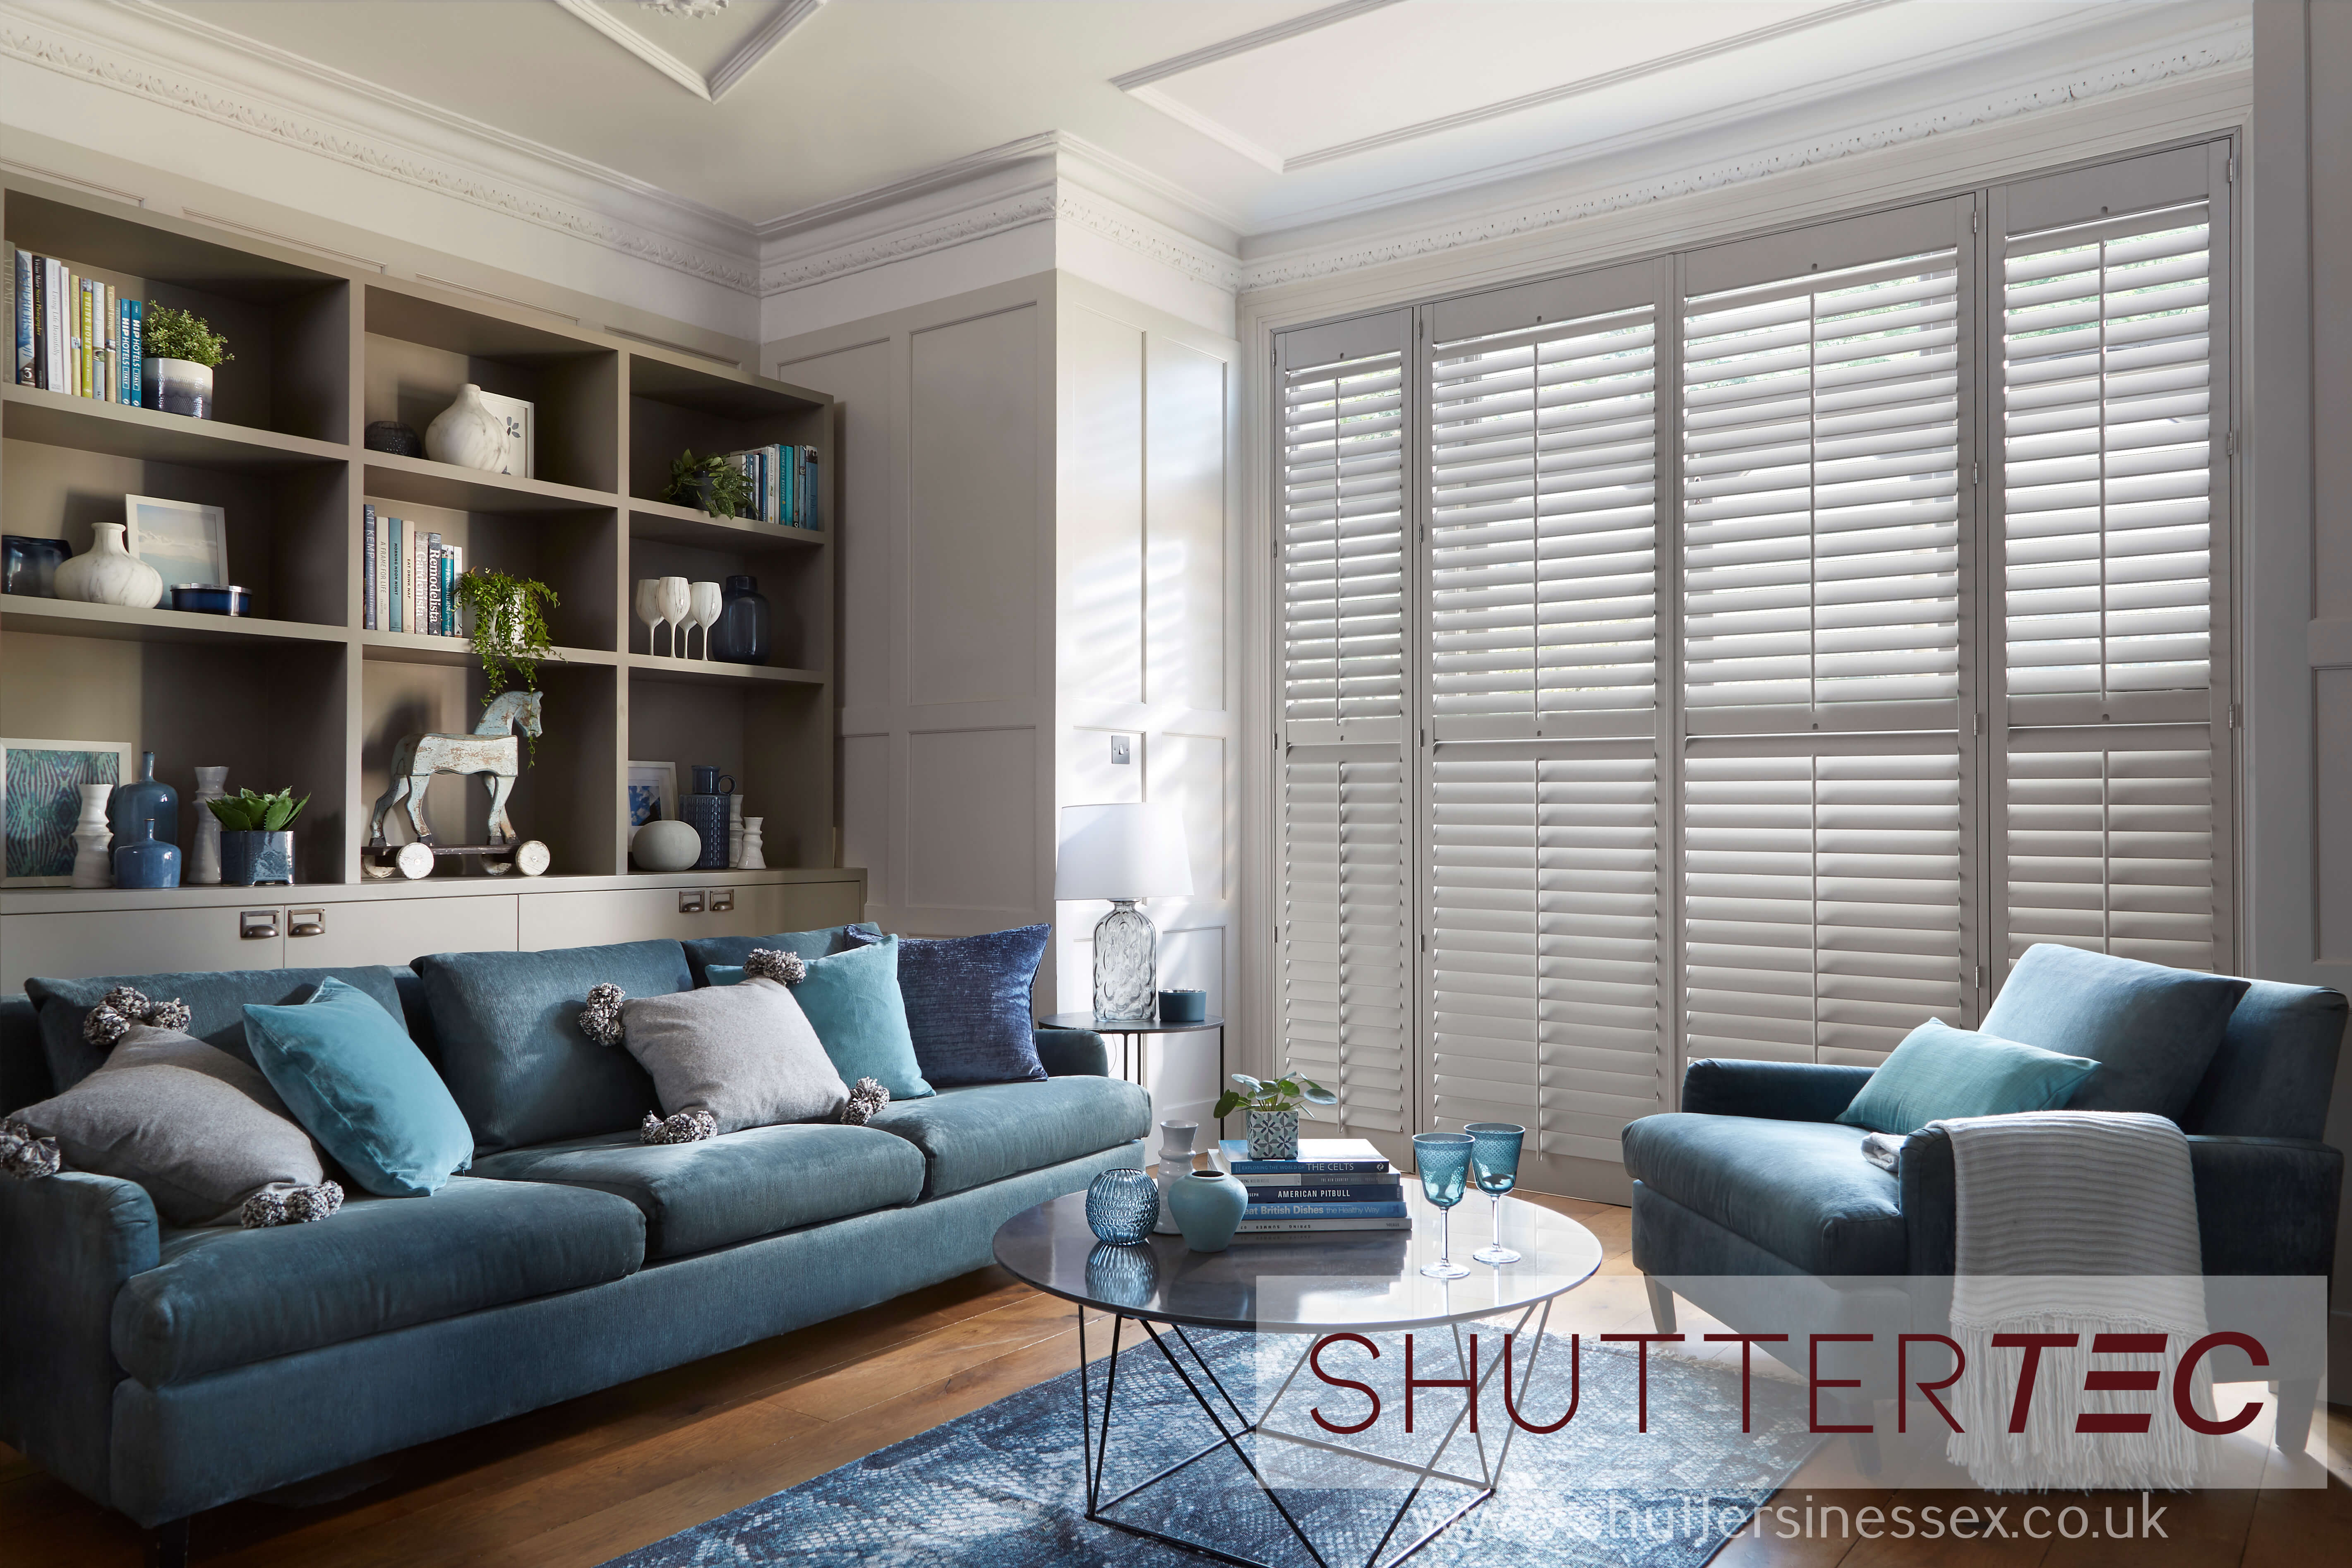 Shutters-for-Essex-home